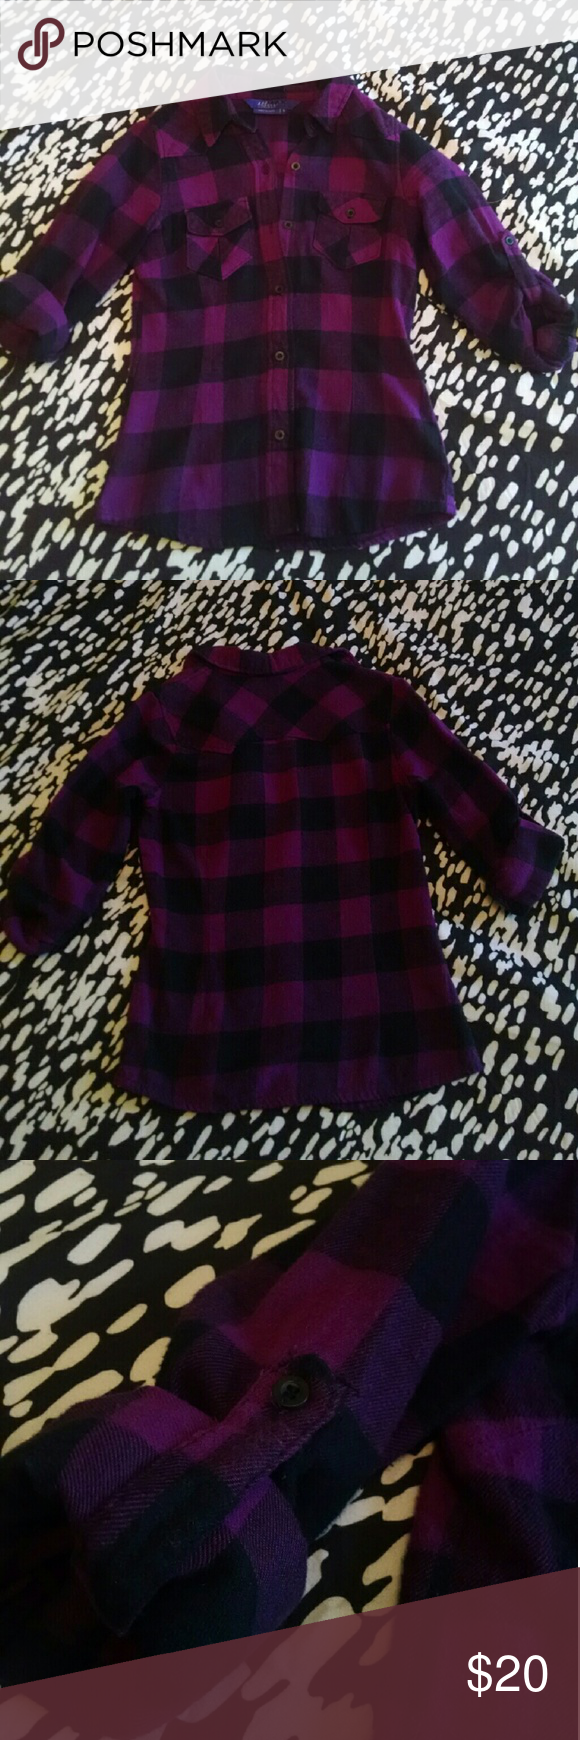 Purple and Black Buffalo Check Plaid Flannel Shirt This purple and black buffalo check plaid flannel shirt has roll tab sleeves. It is has only been worn and laundered twice and is looking for a good home! The perfect addition to your fall wardrobe. Miley Cyrus Max Azria Tops Button Down Shirts